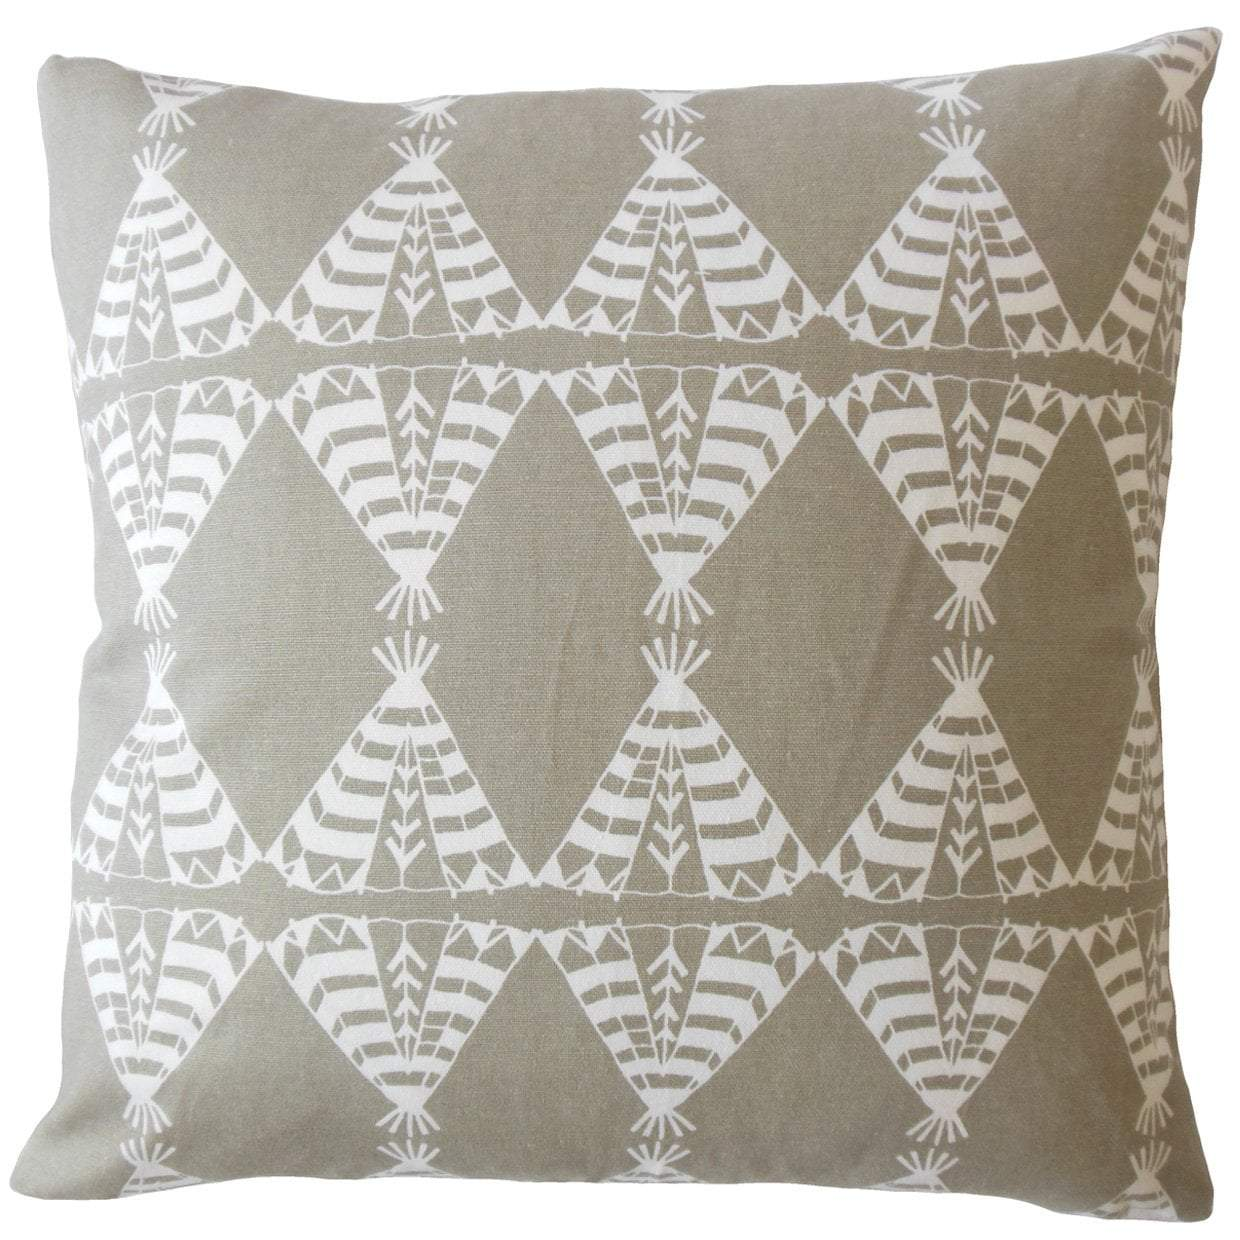 Light Gray Cotton Graphic Contemporary Throw Pillow Cover